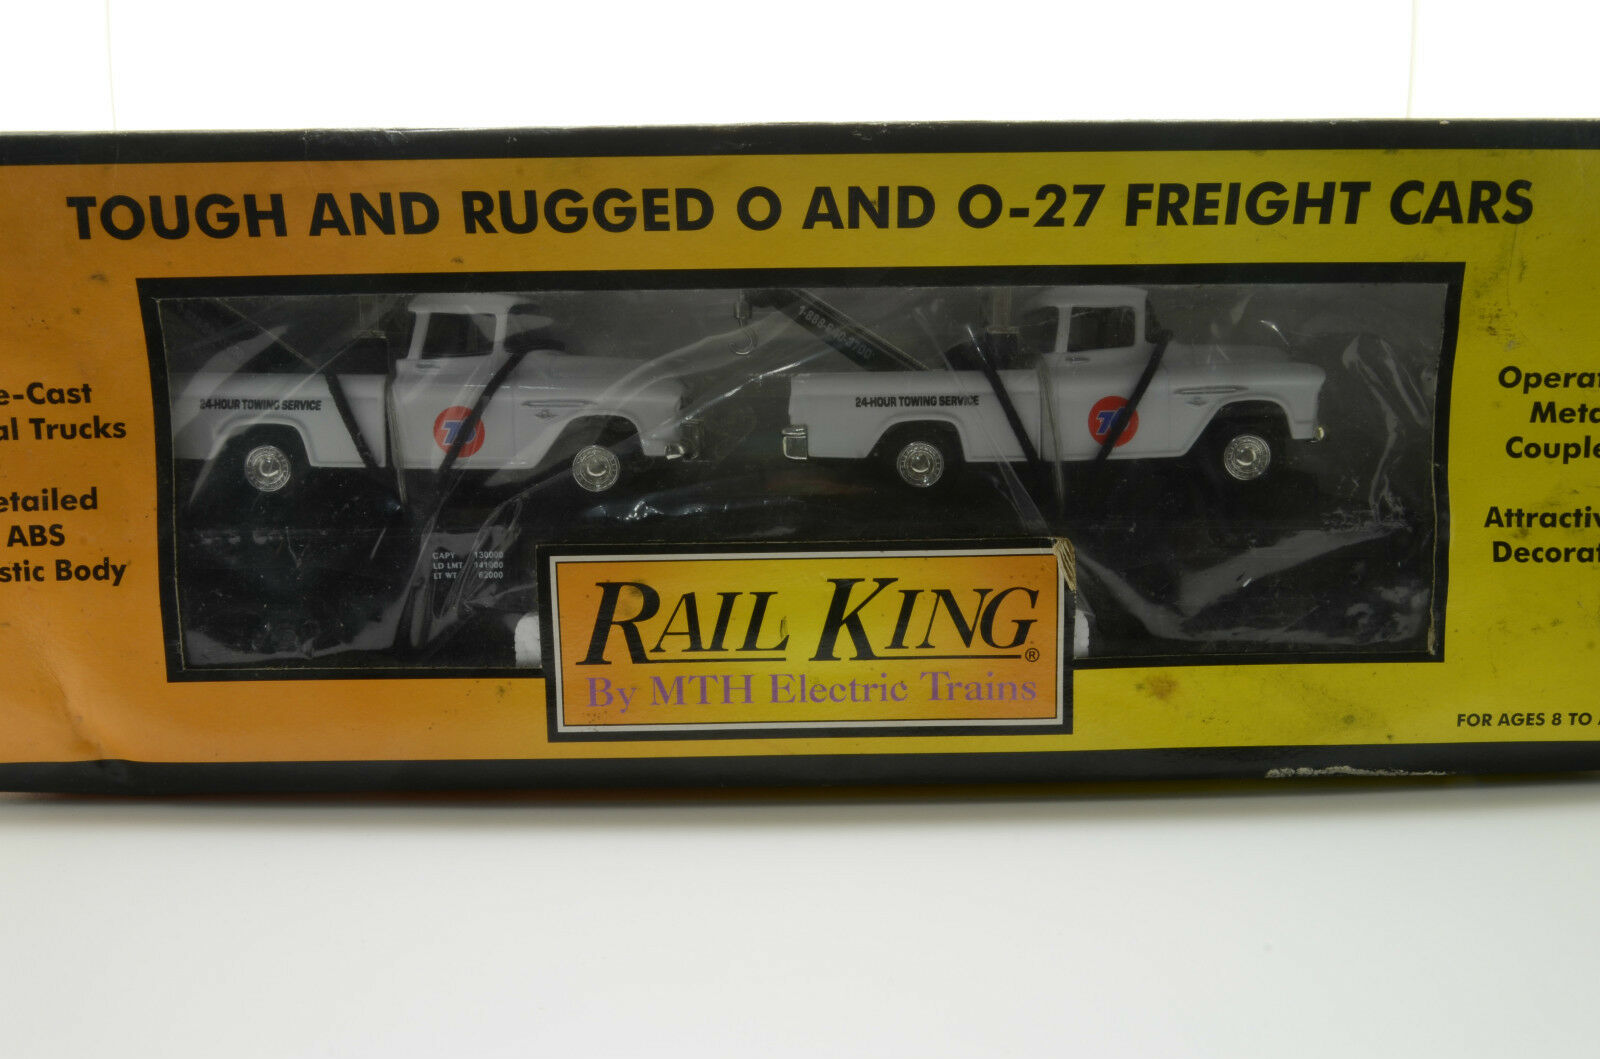 RARE    Freight Cars Cars Cars Rail King by MTH Electric Trains 95f762